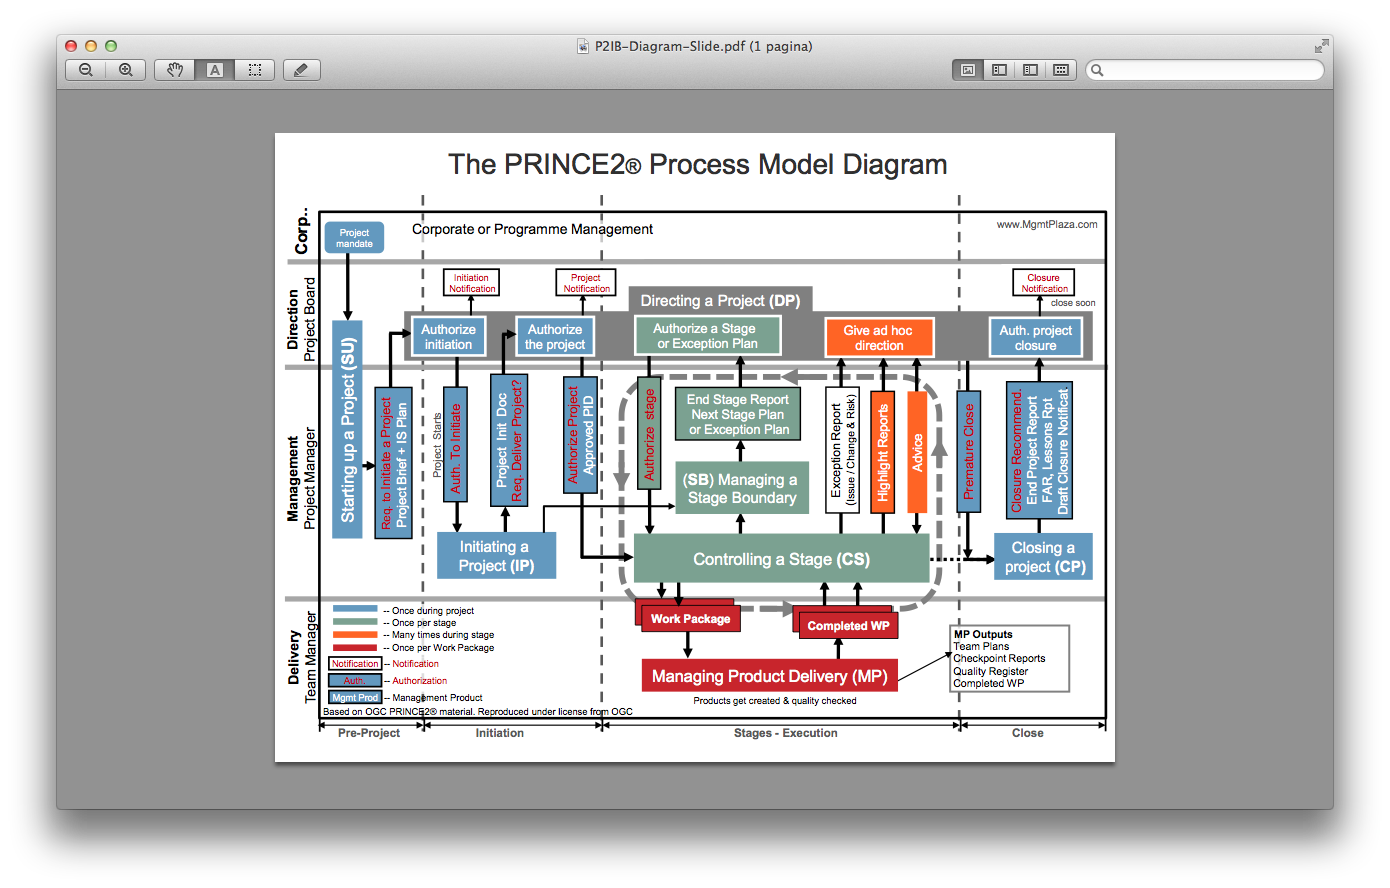 The prince2 process model diagram freank 2g 1390888 pixels project management nvjuhfo Image collections